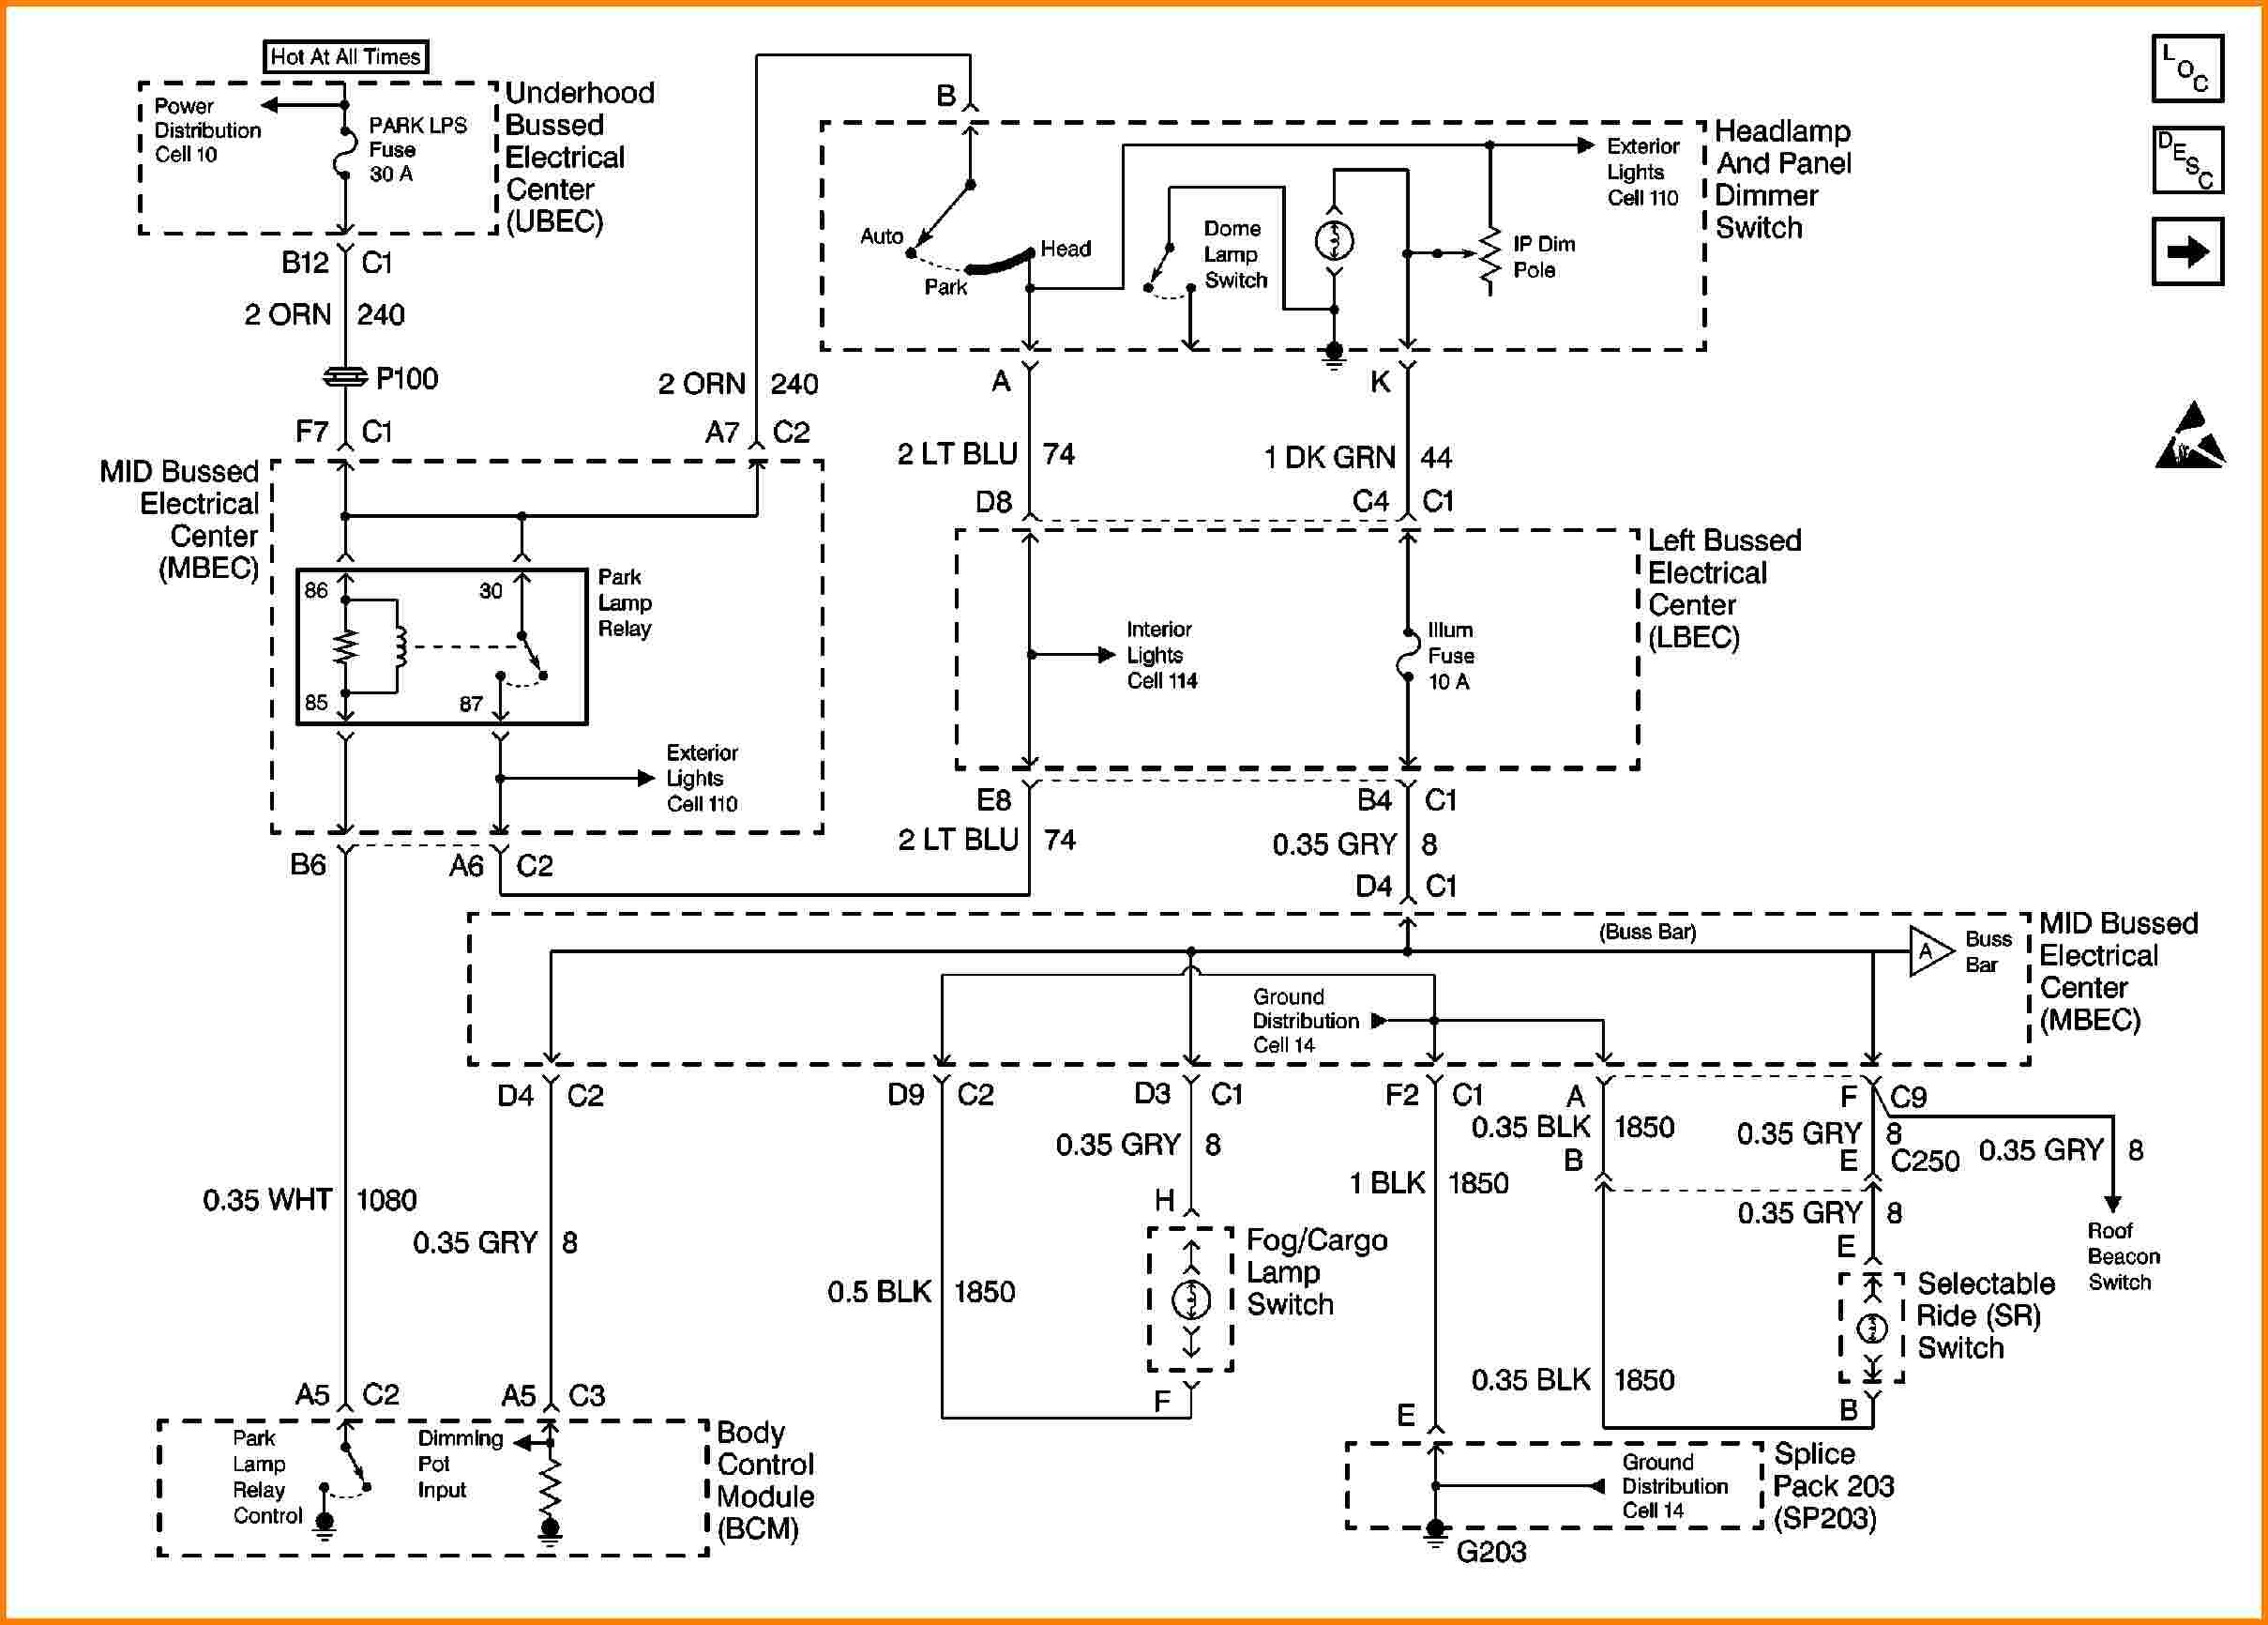 2007 Chevy Silverado Hitch Wiring Diagram - Alpine Car Speaker Wiring  Diagrams - pipiing.xp5-khalifah-ustmaniah.pistadelsole.itWiring Diagram Resource